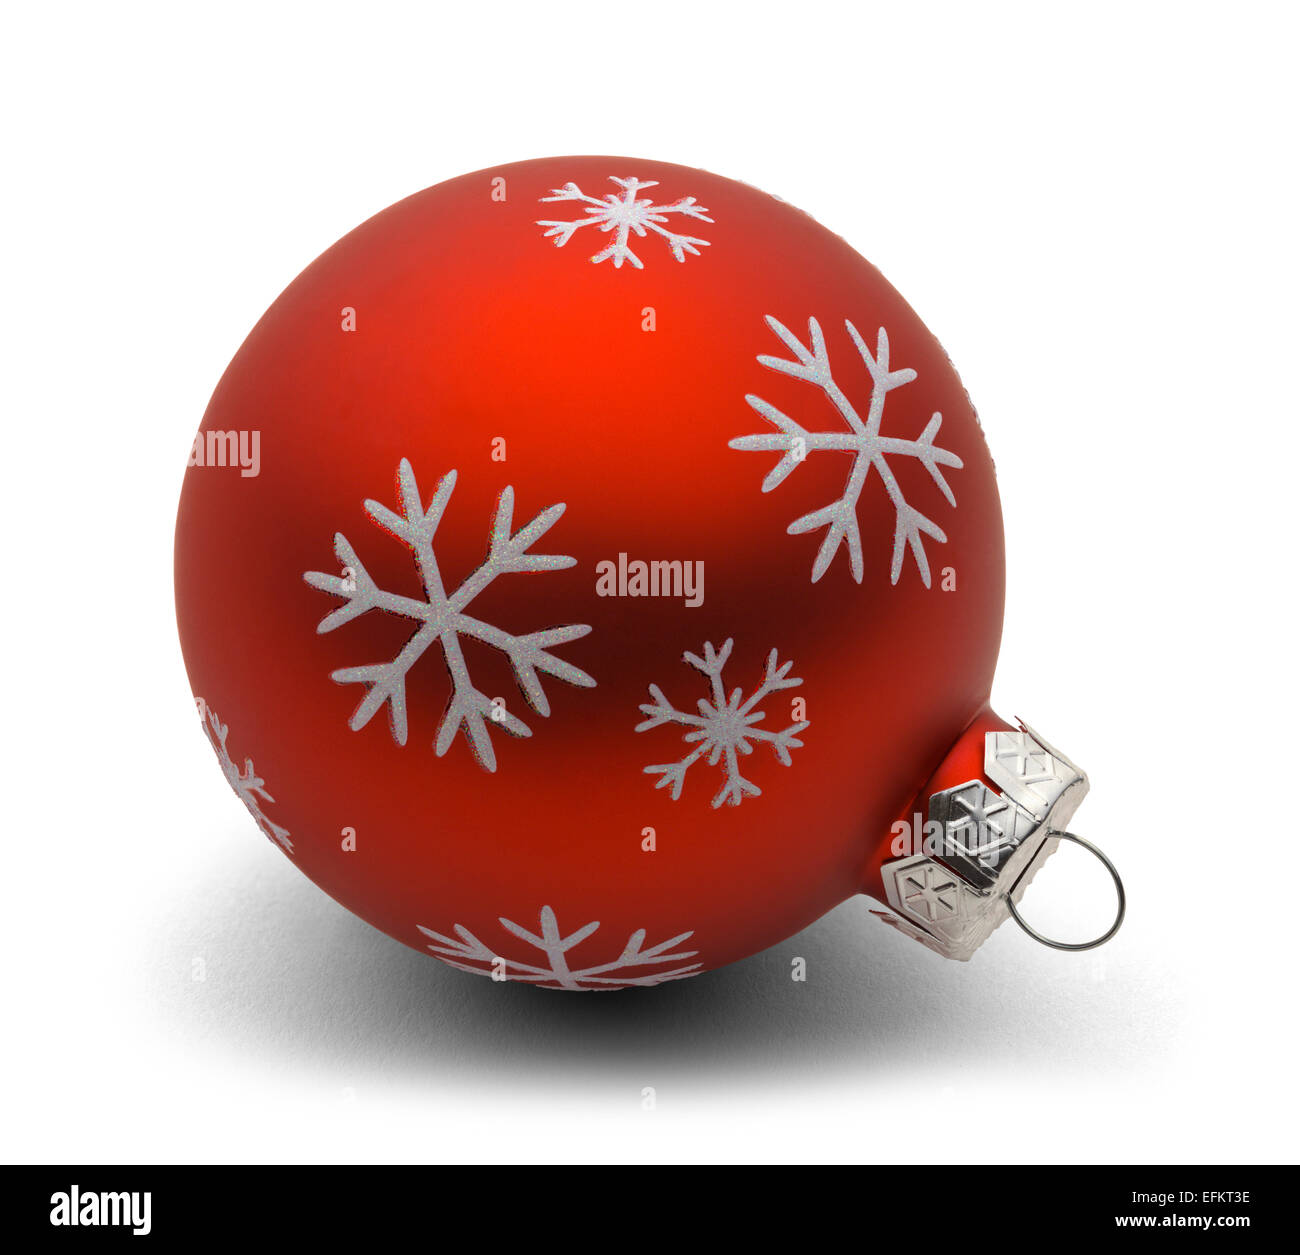 Weihnachten Glaskolben mit Schneeflocken, Isolated on White Background. Stockbild